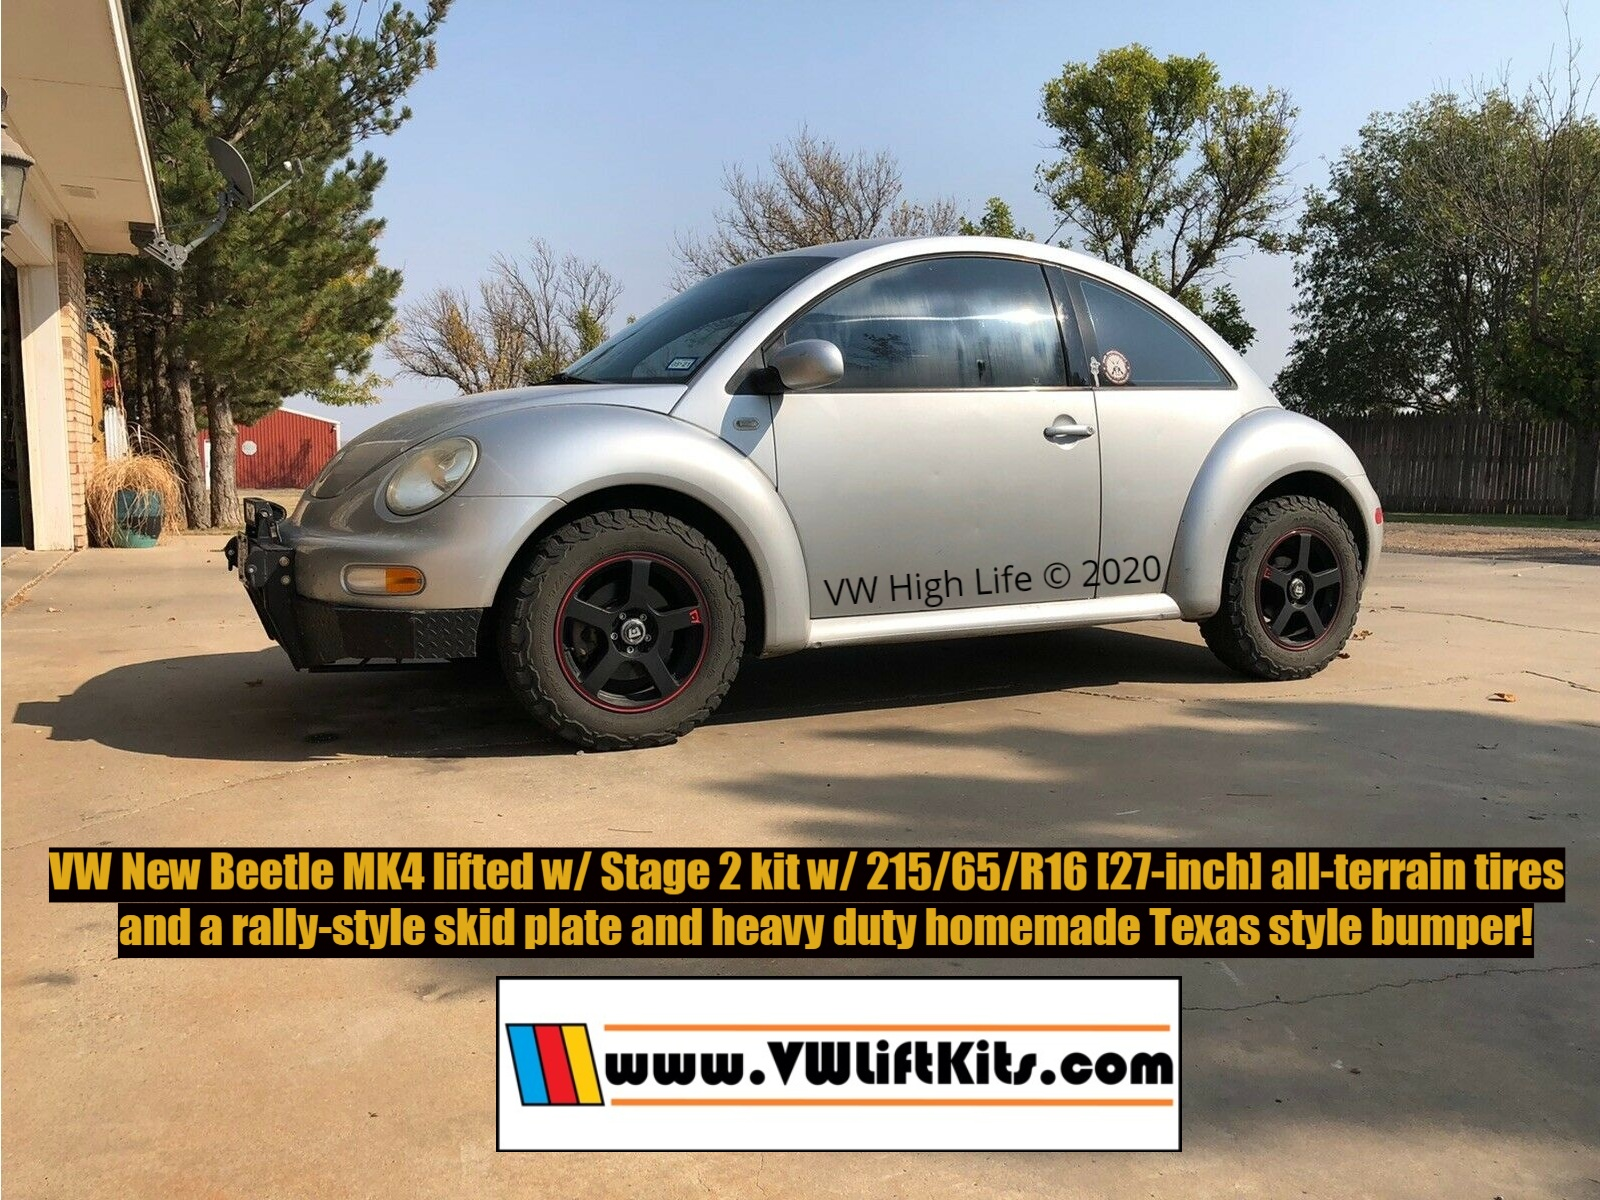 Cliff's VW New Beetle MK4.  Cliff fabricated his own homemade Texas ranch heavy duty bumper!